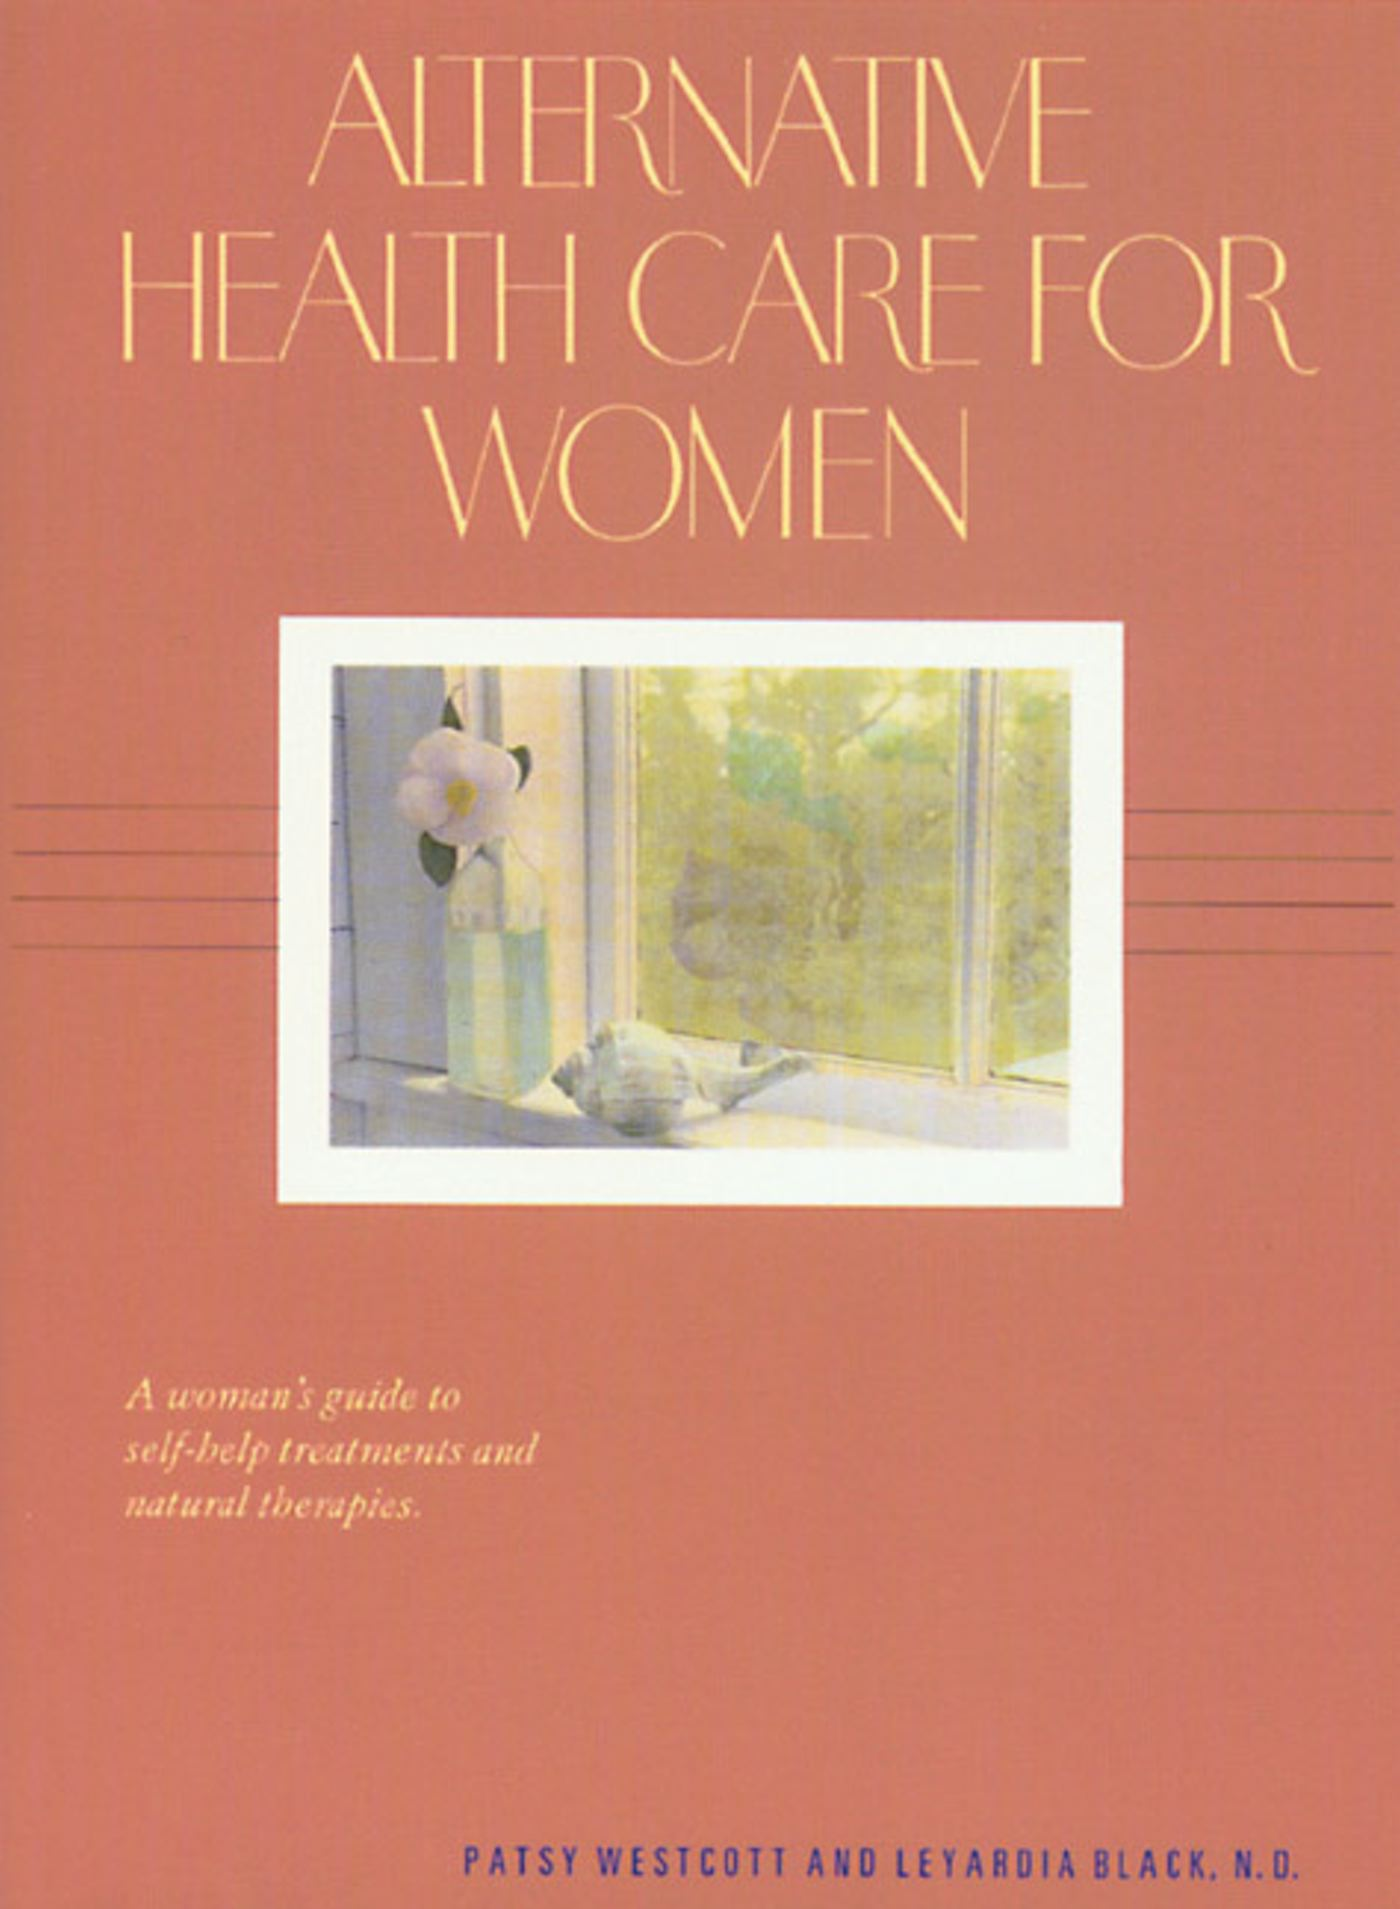 Alternative health care for women 9780892812455 hr